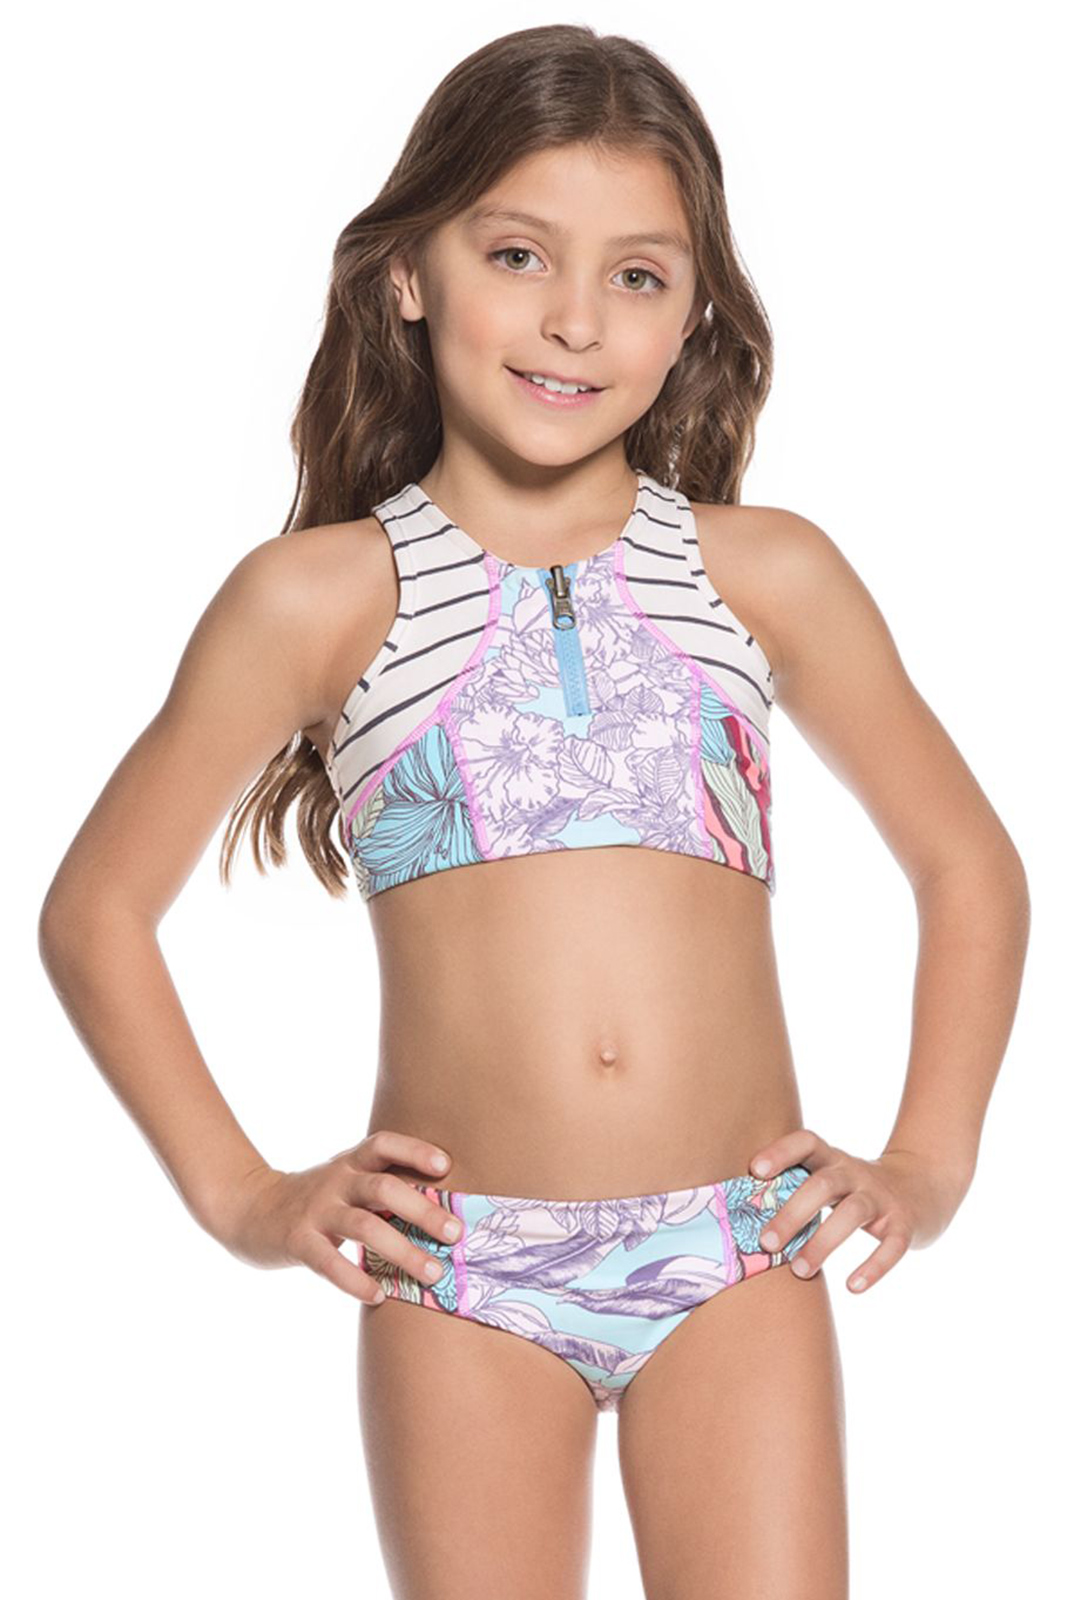 Little Girls Crop Top Bikini Set In A Mixed Pastel Print